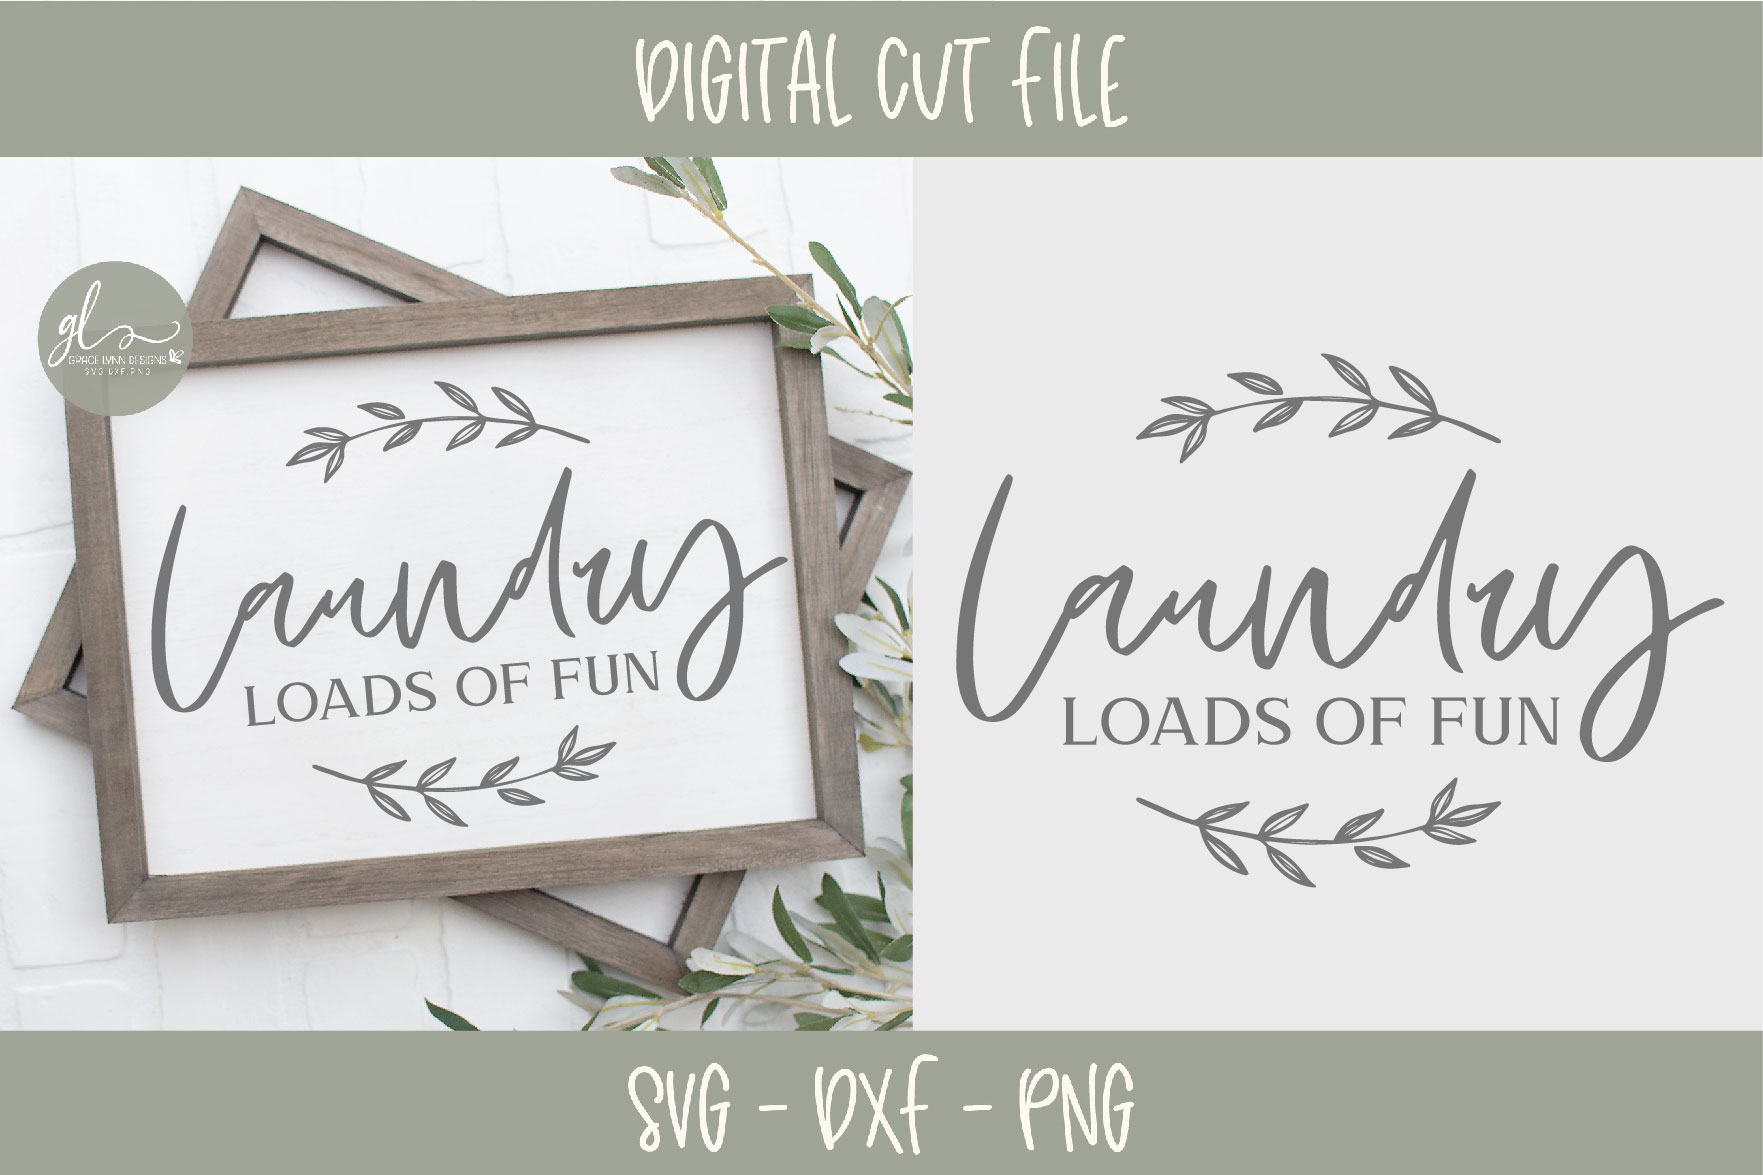 Laundry Loads Of Fun - SVG Cut File example image 1